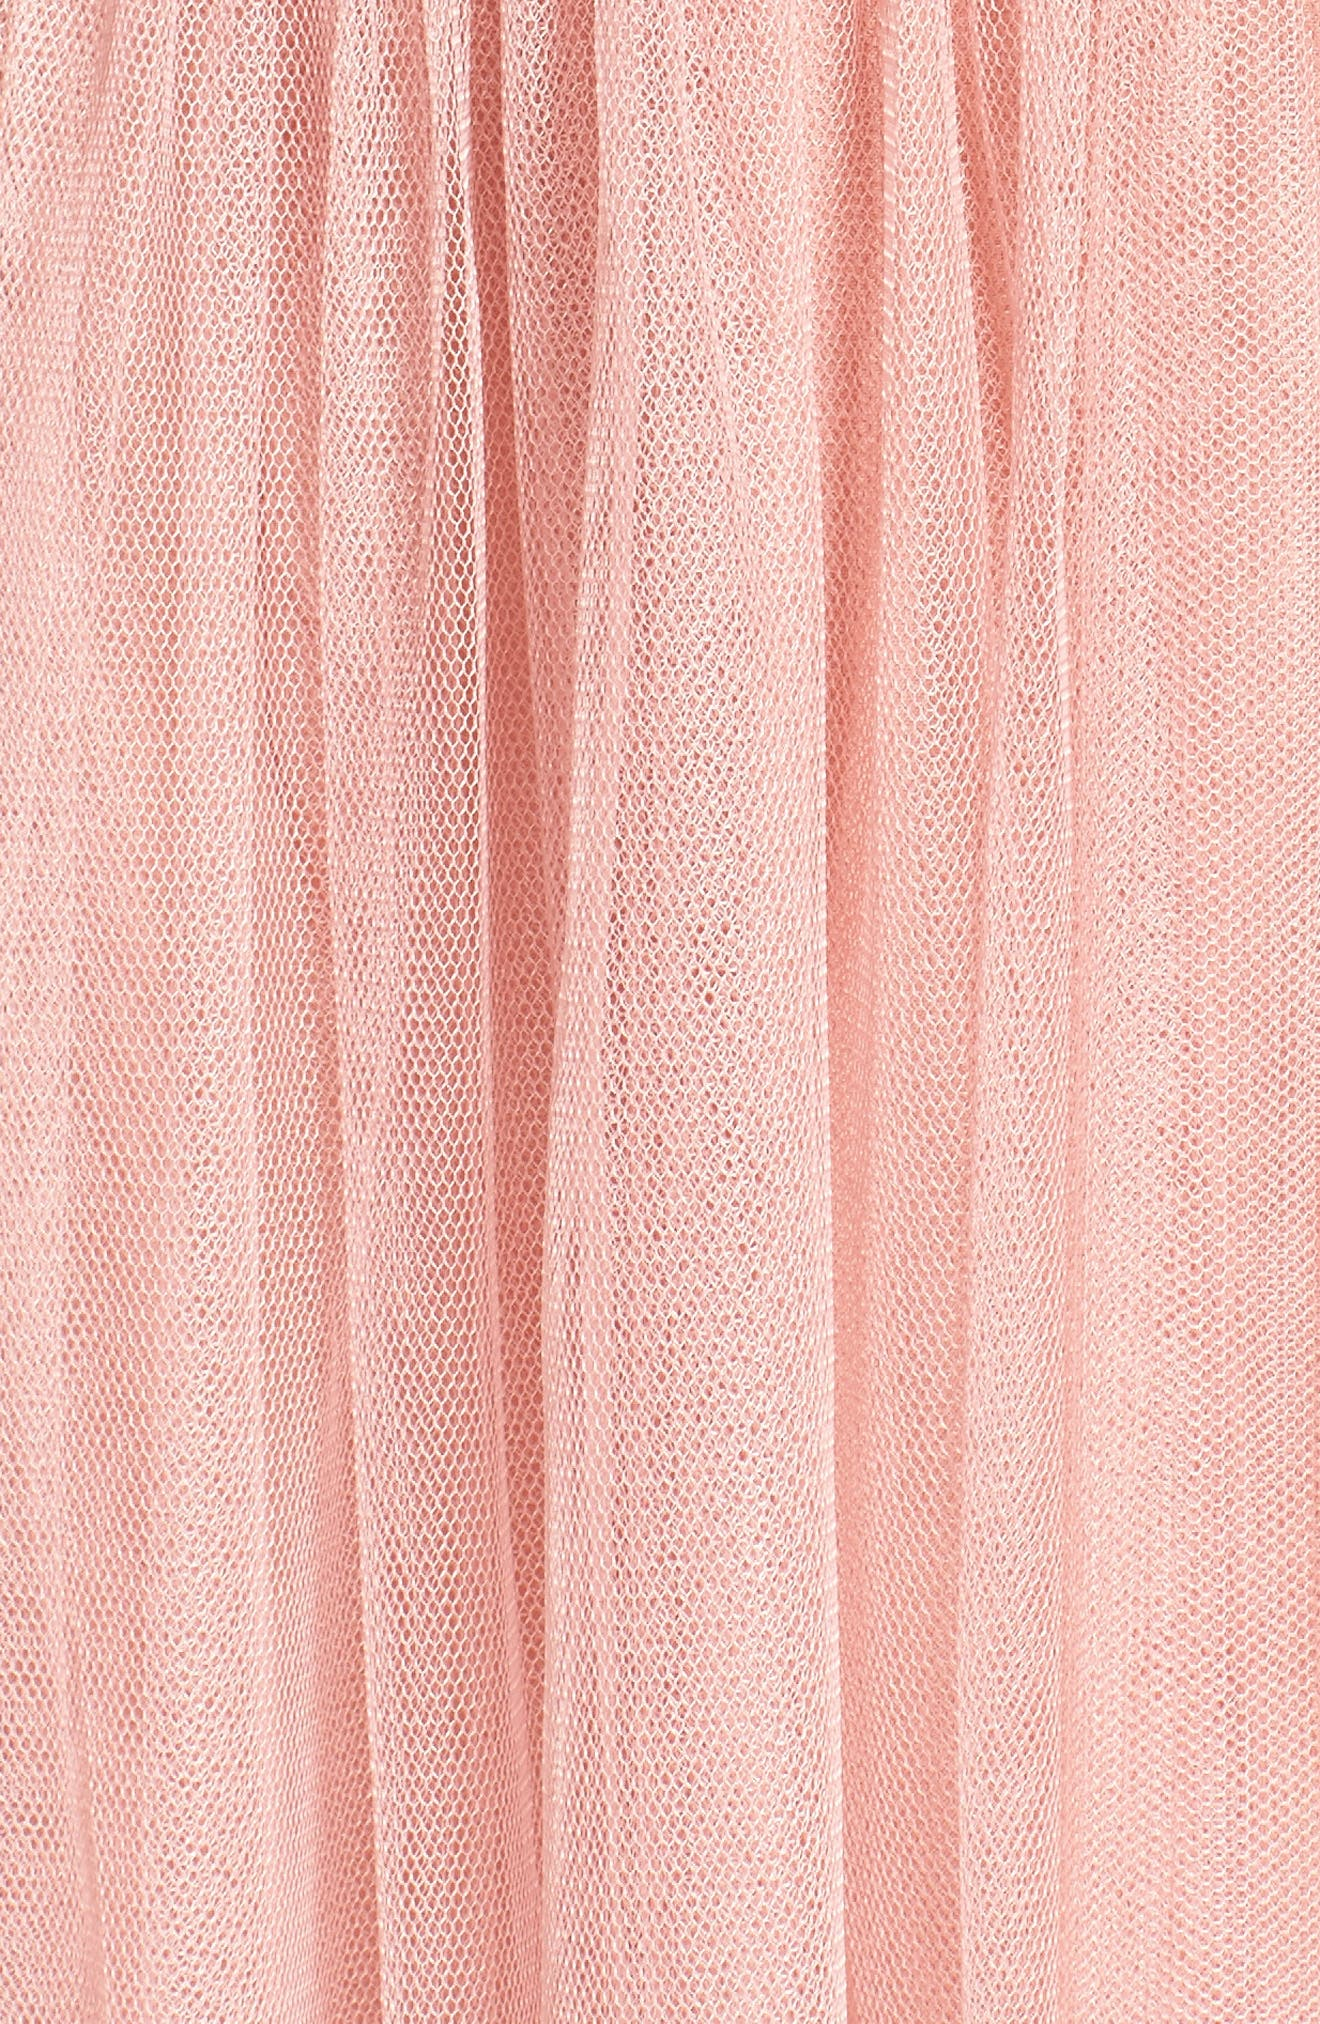 Annabelle Convertible Tulle Column Dress,                             Alternate thumbnail 147, color,